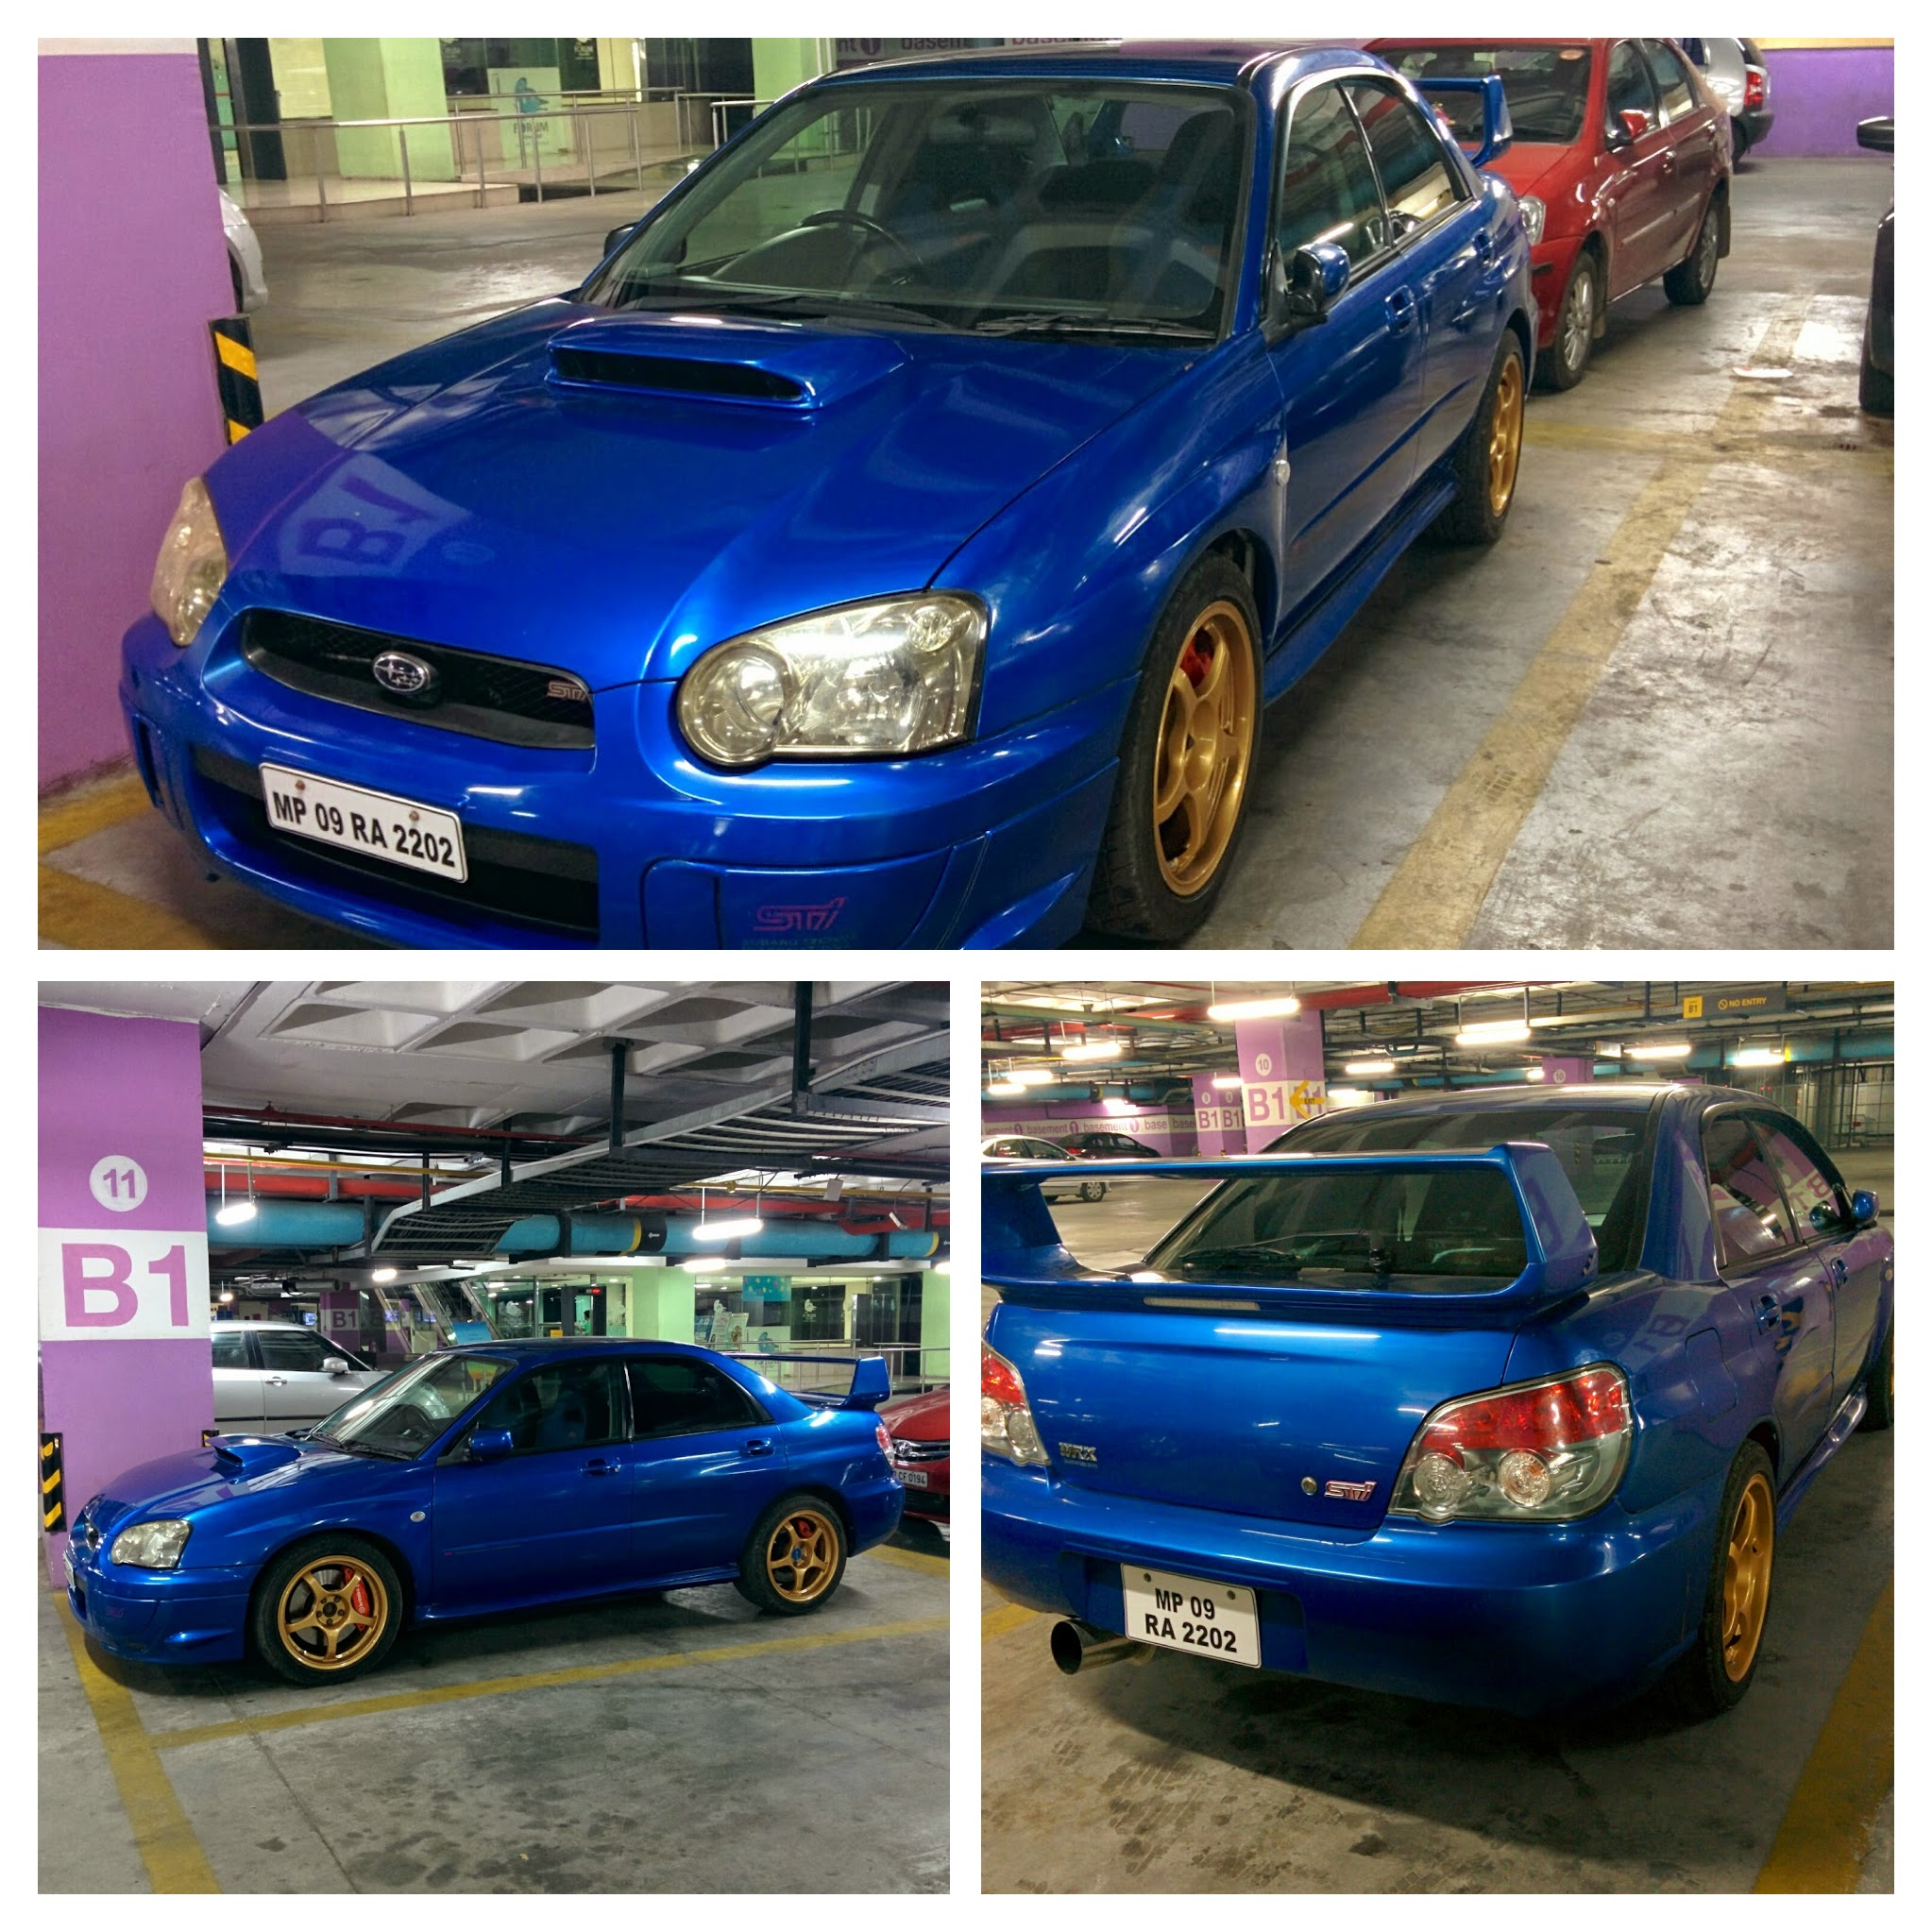 You rarely spot a Subaru on the streets no matter which country you